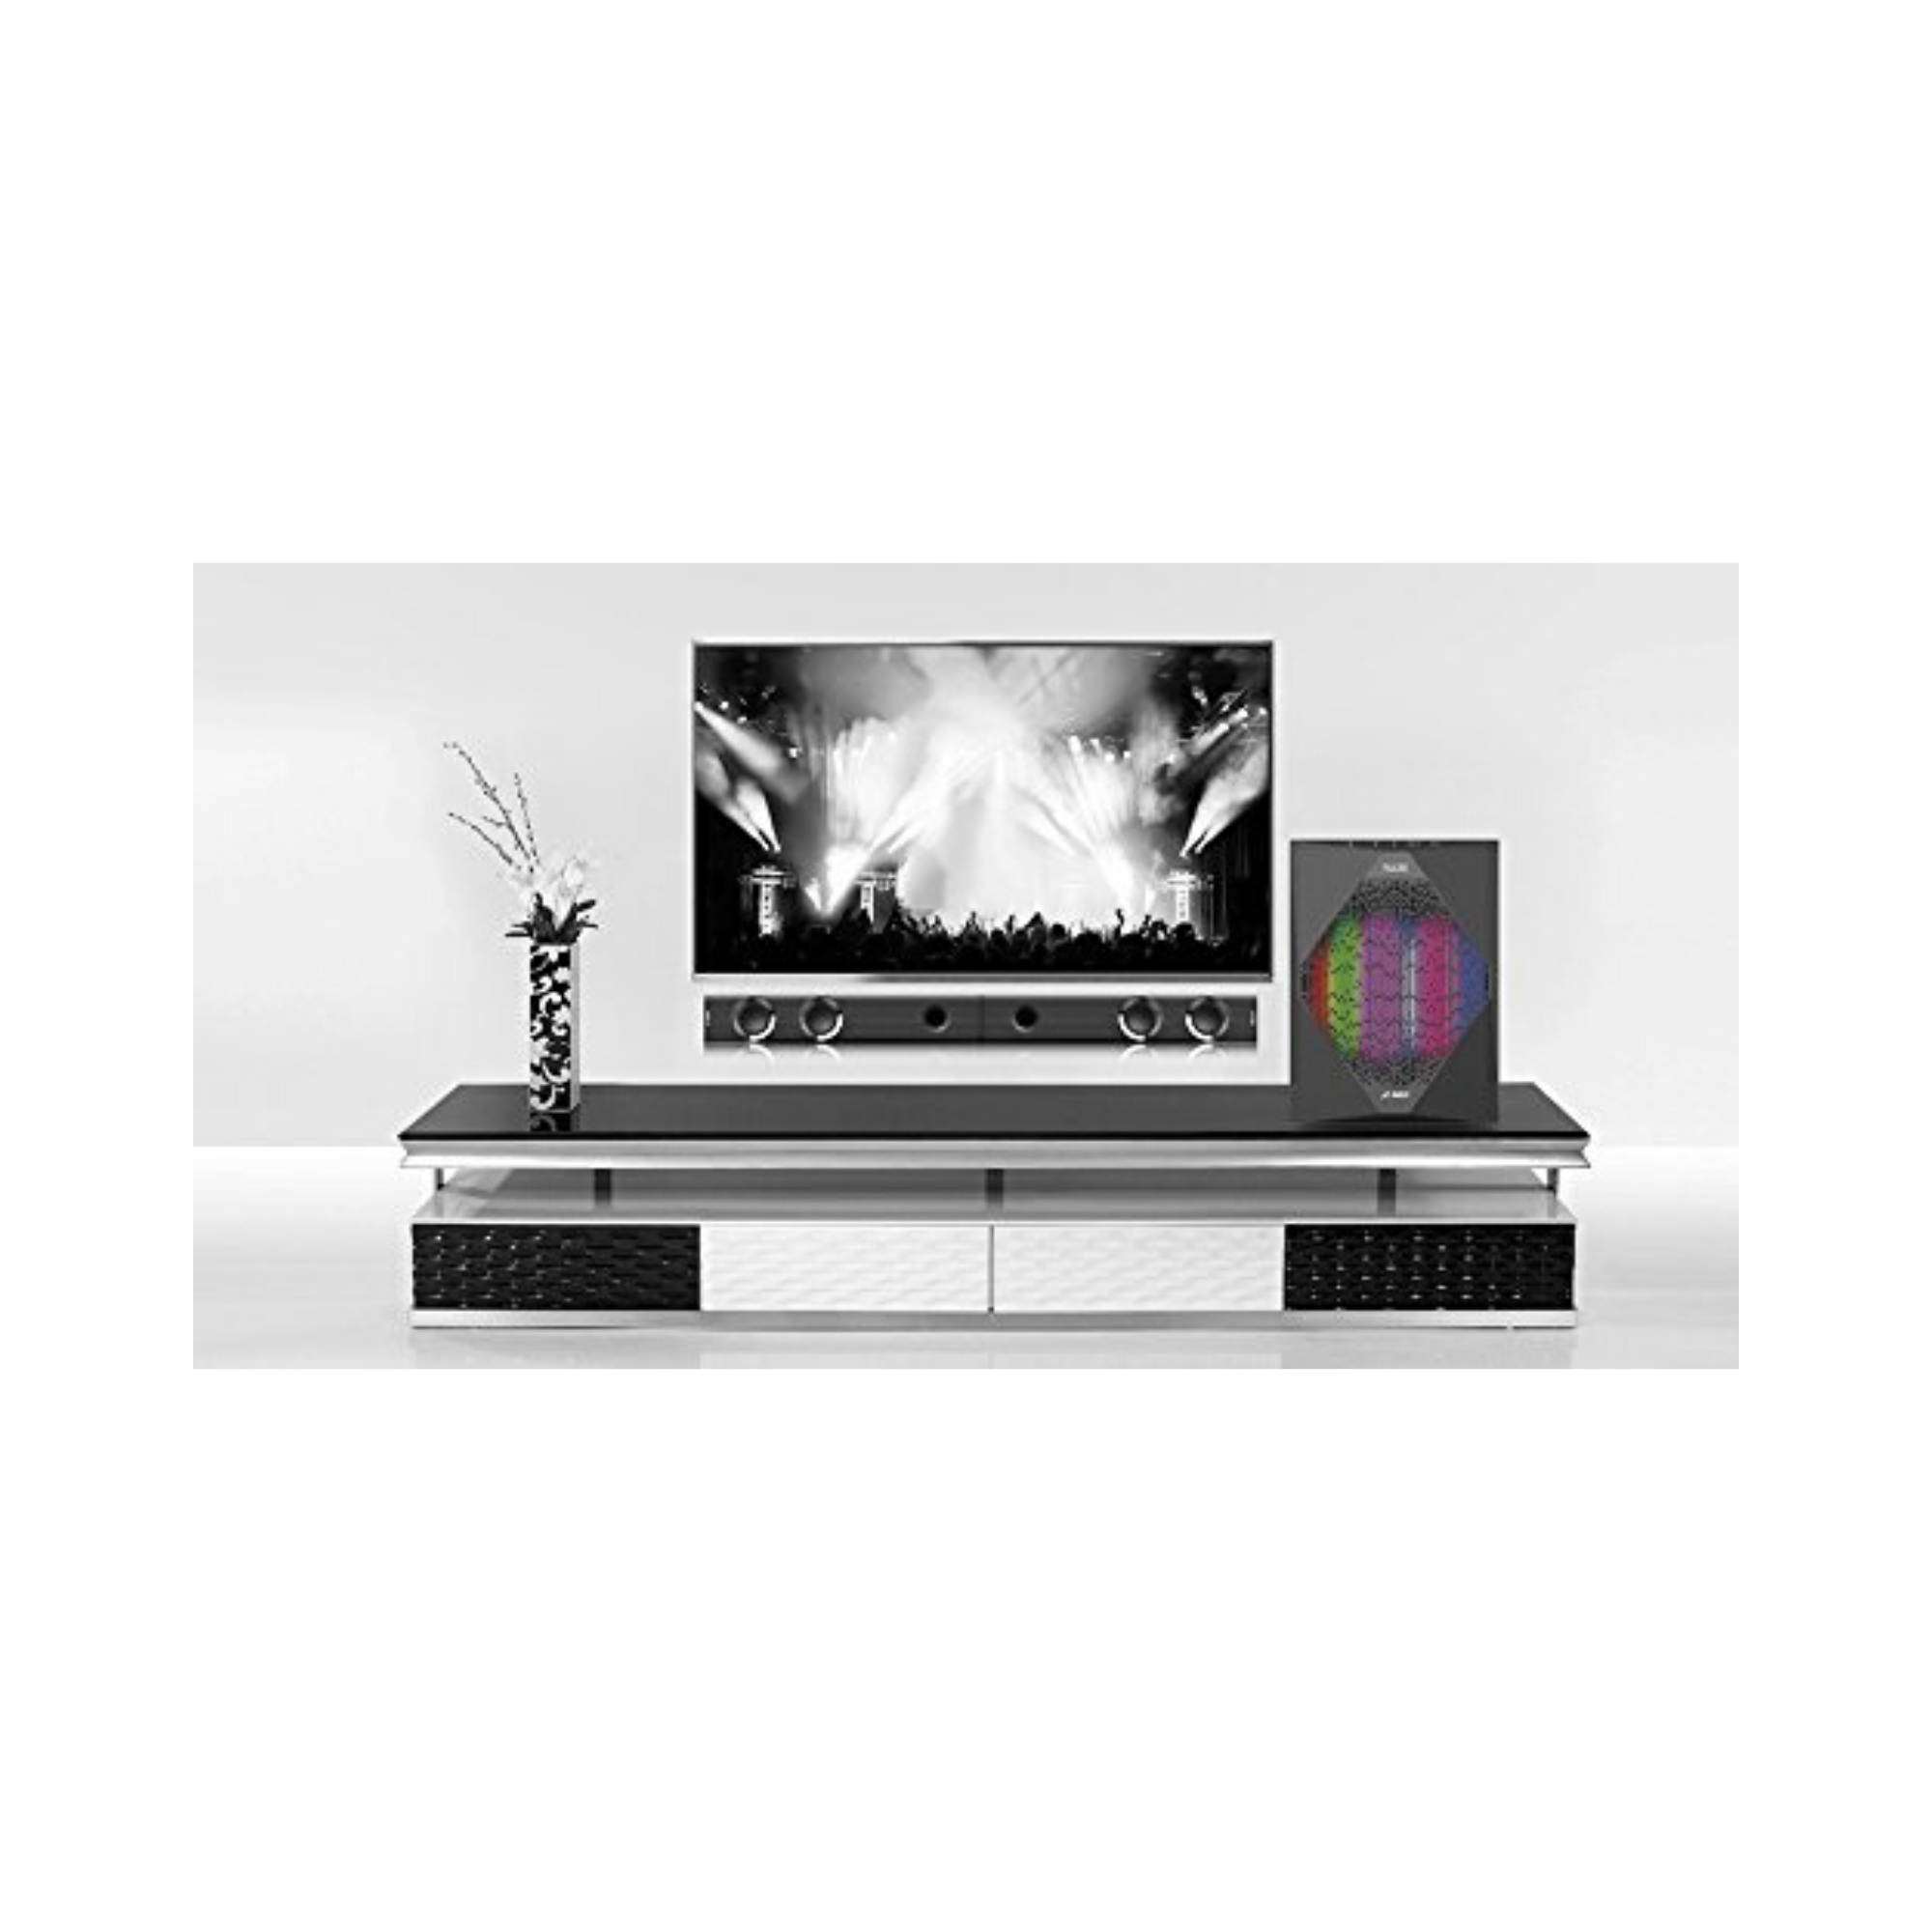 F&D T300X Covertible Sound Bar with Subwoofer (Black)